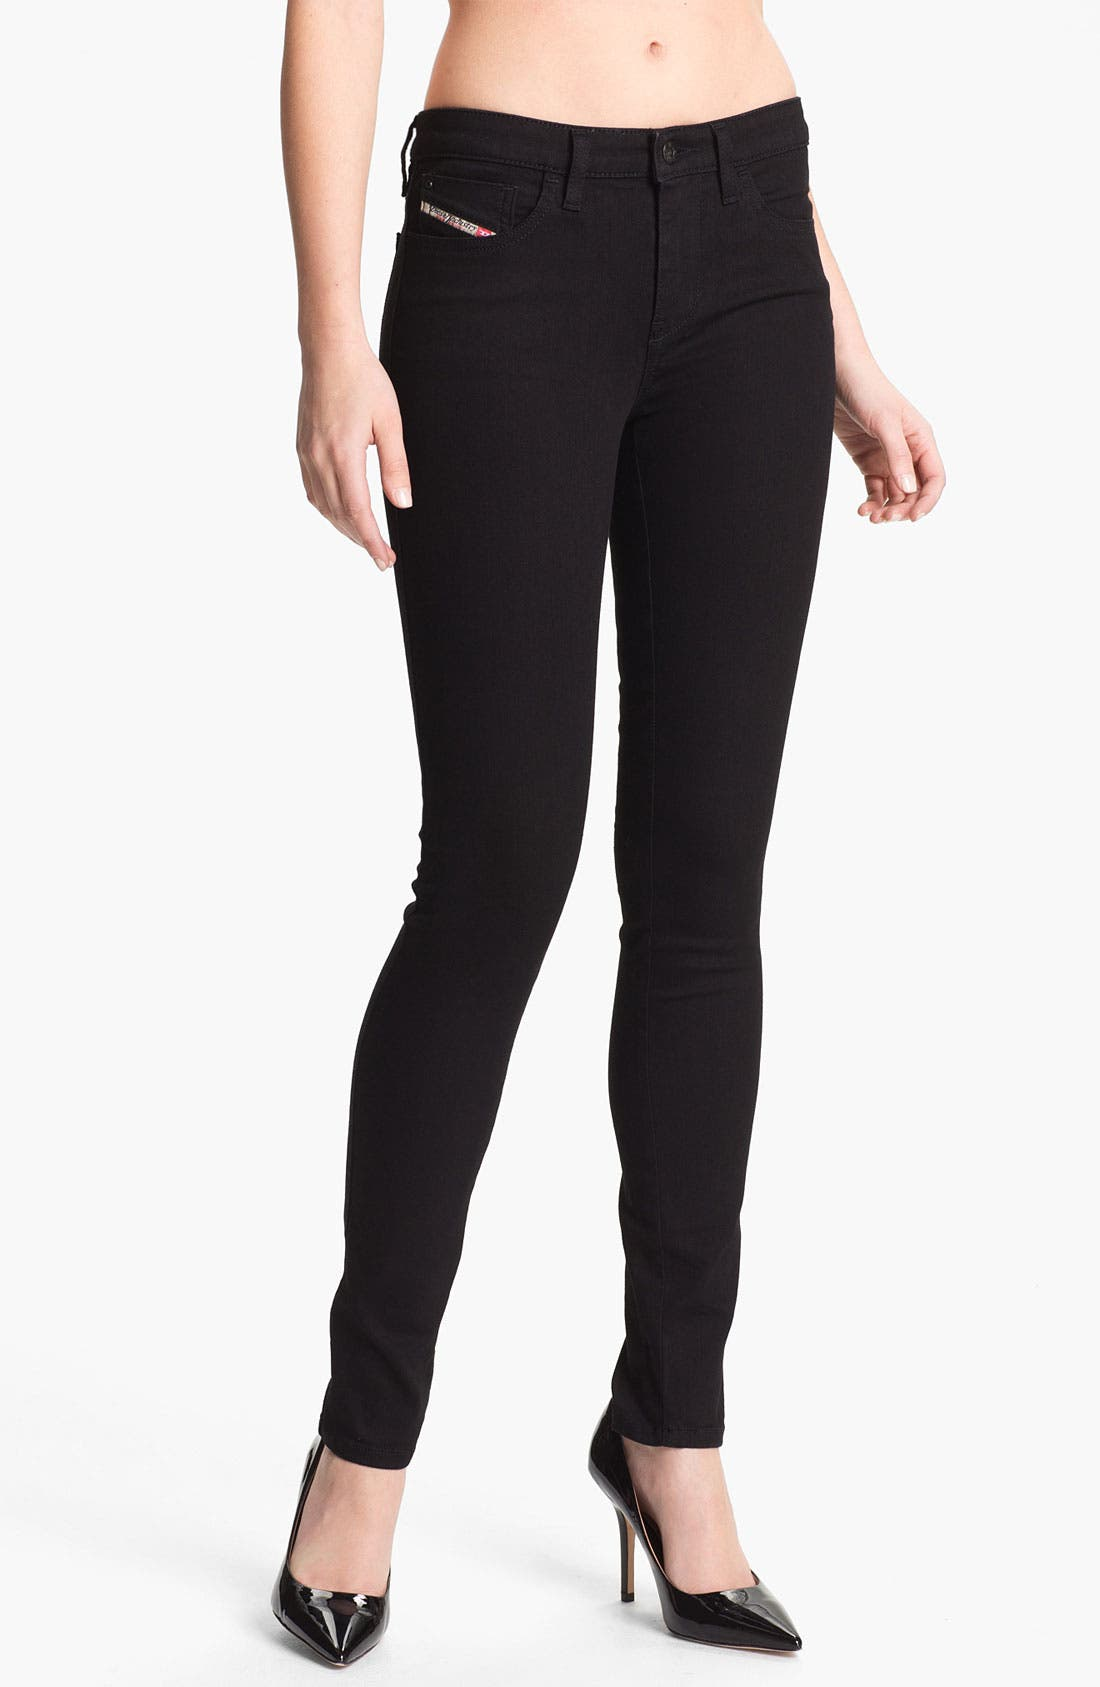 Alternate Image 1 Selected - DIESEL® 'Skinzee' Stretch Skinny Jeans (Black)